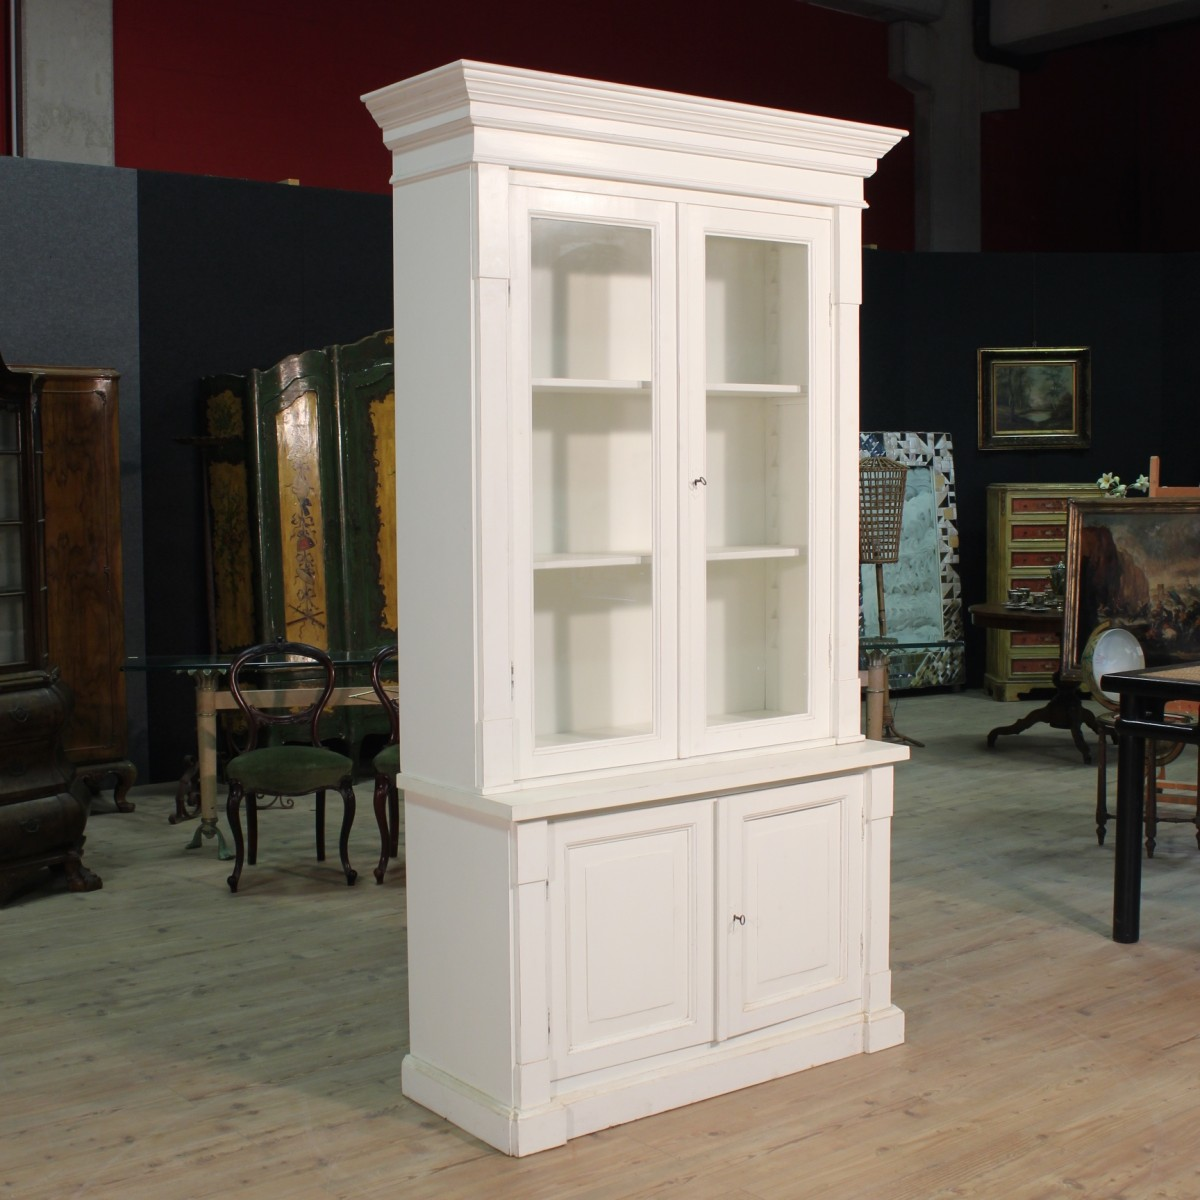 Vitrine Modern Details About Showcase Display Cabinet Vitrine Painted White Modern Antique Style 900 Cabinet